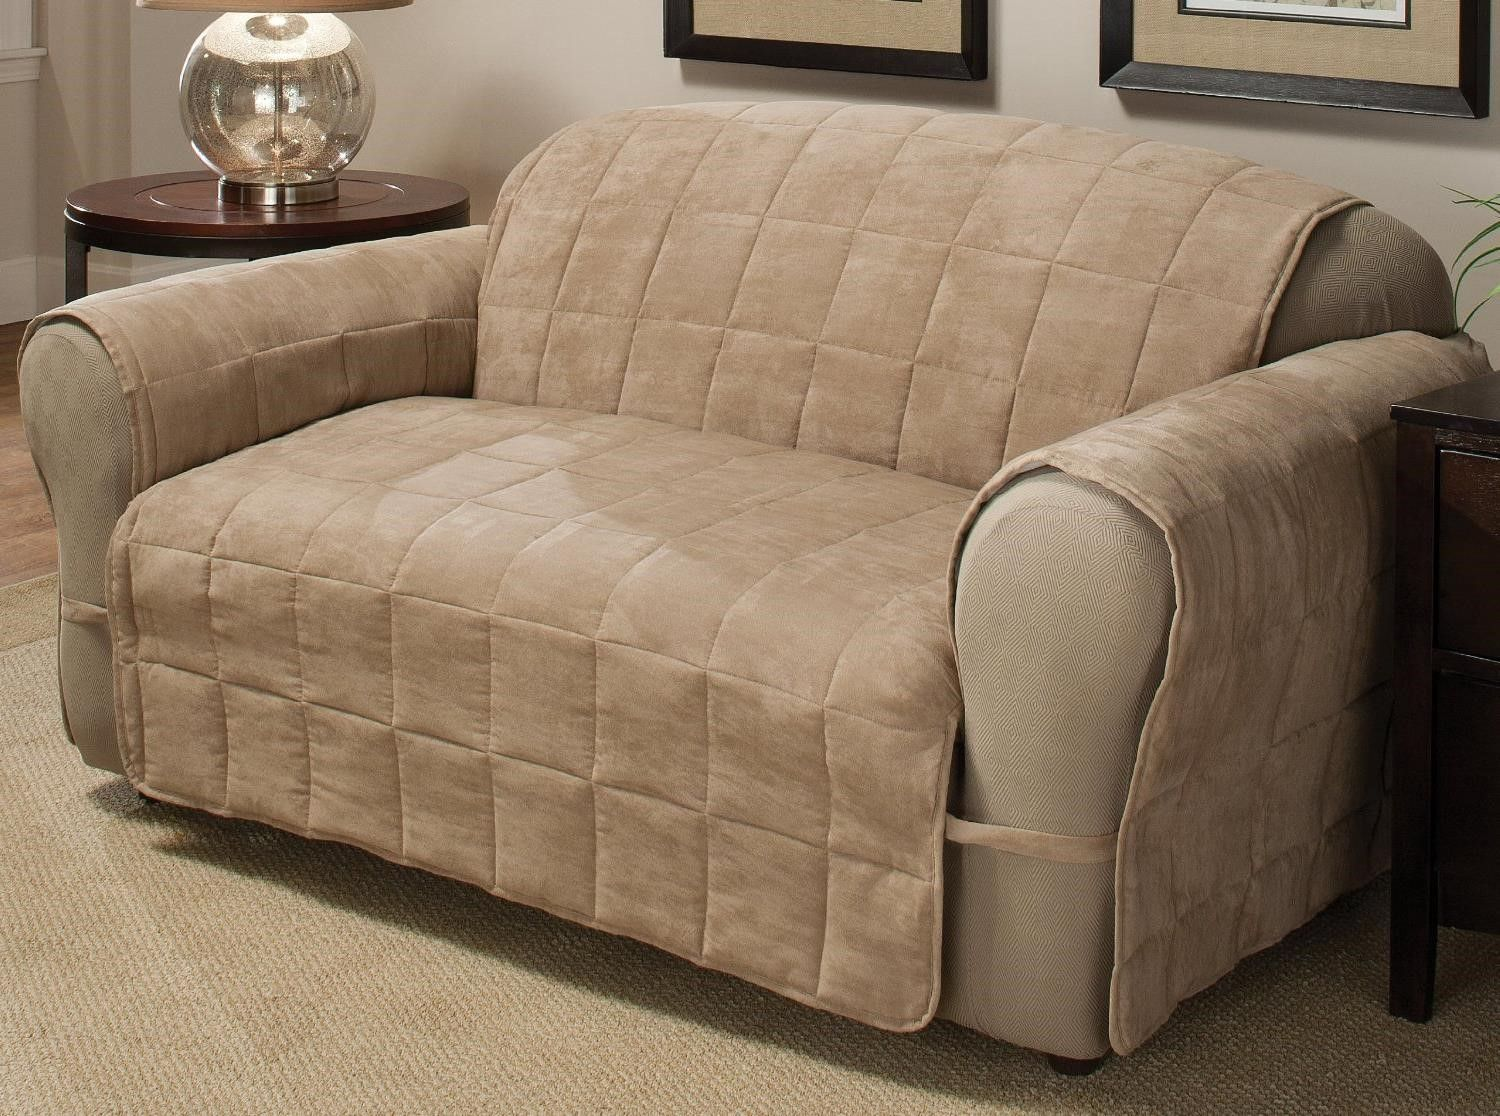 stretch morgan 1 piece sofa furniture cover how to remove curry stain from leather covers for couch 170 best images